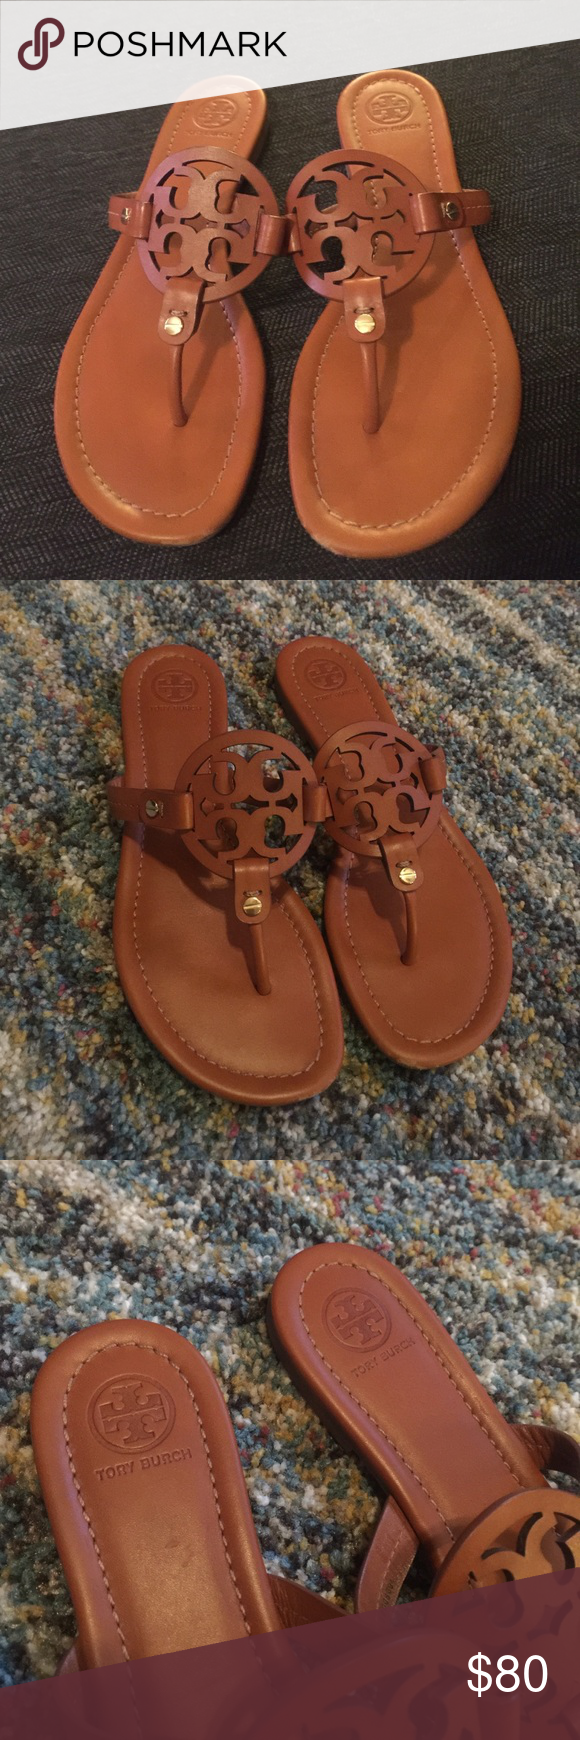 3bdd8428b16594 Tory Burch Miller Sandals! Size 8 leather